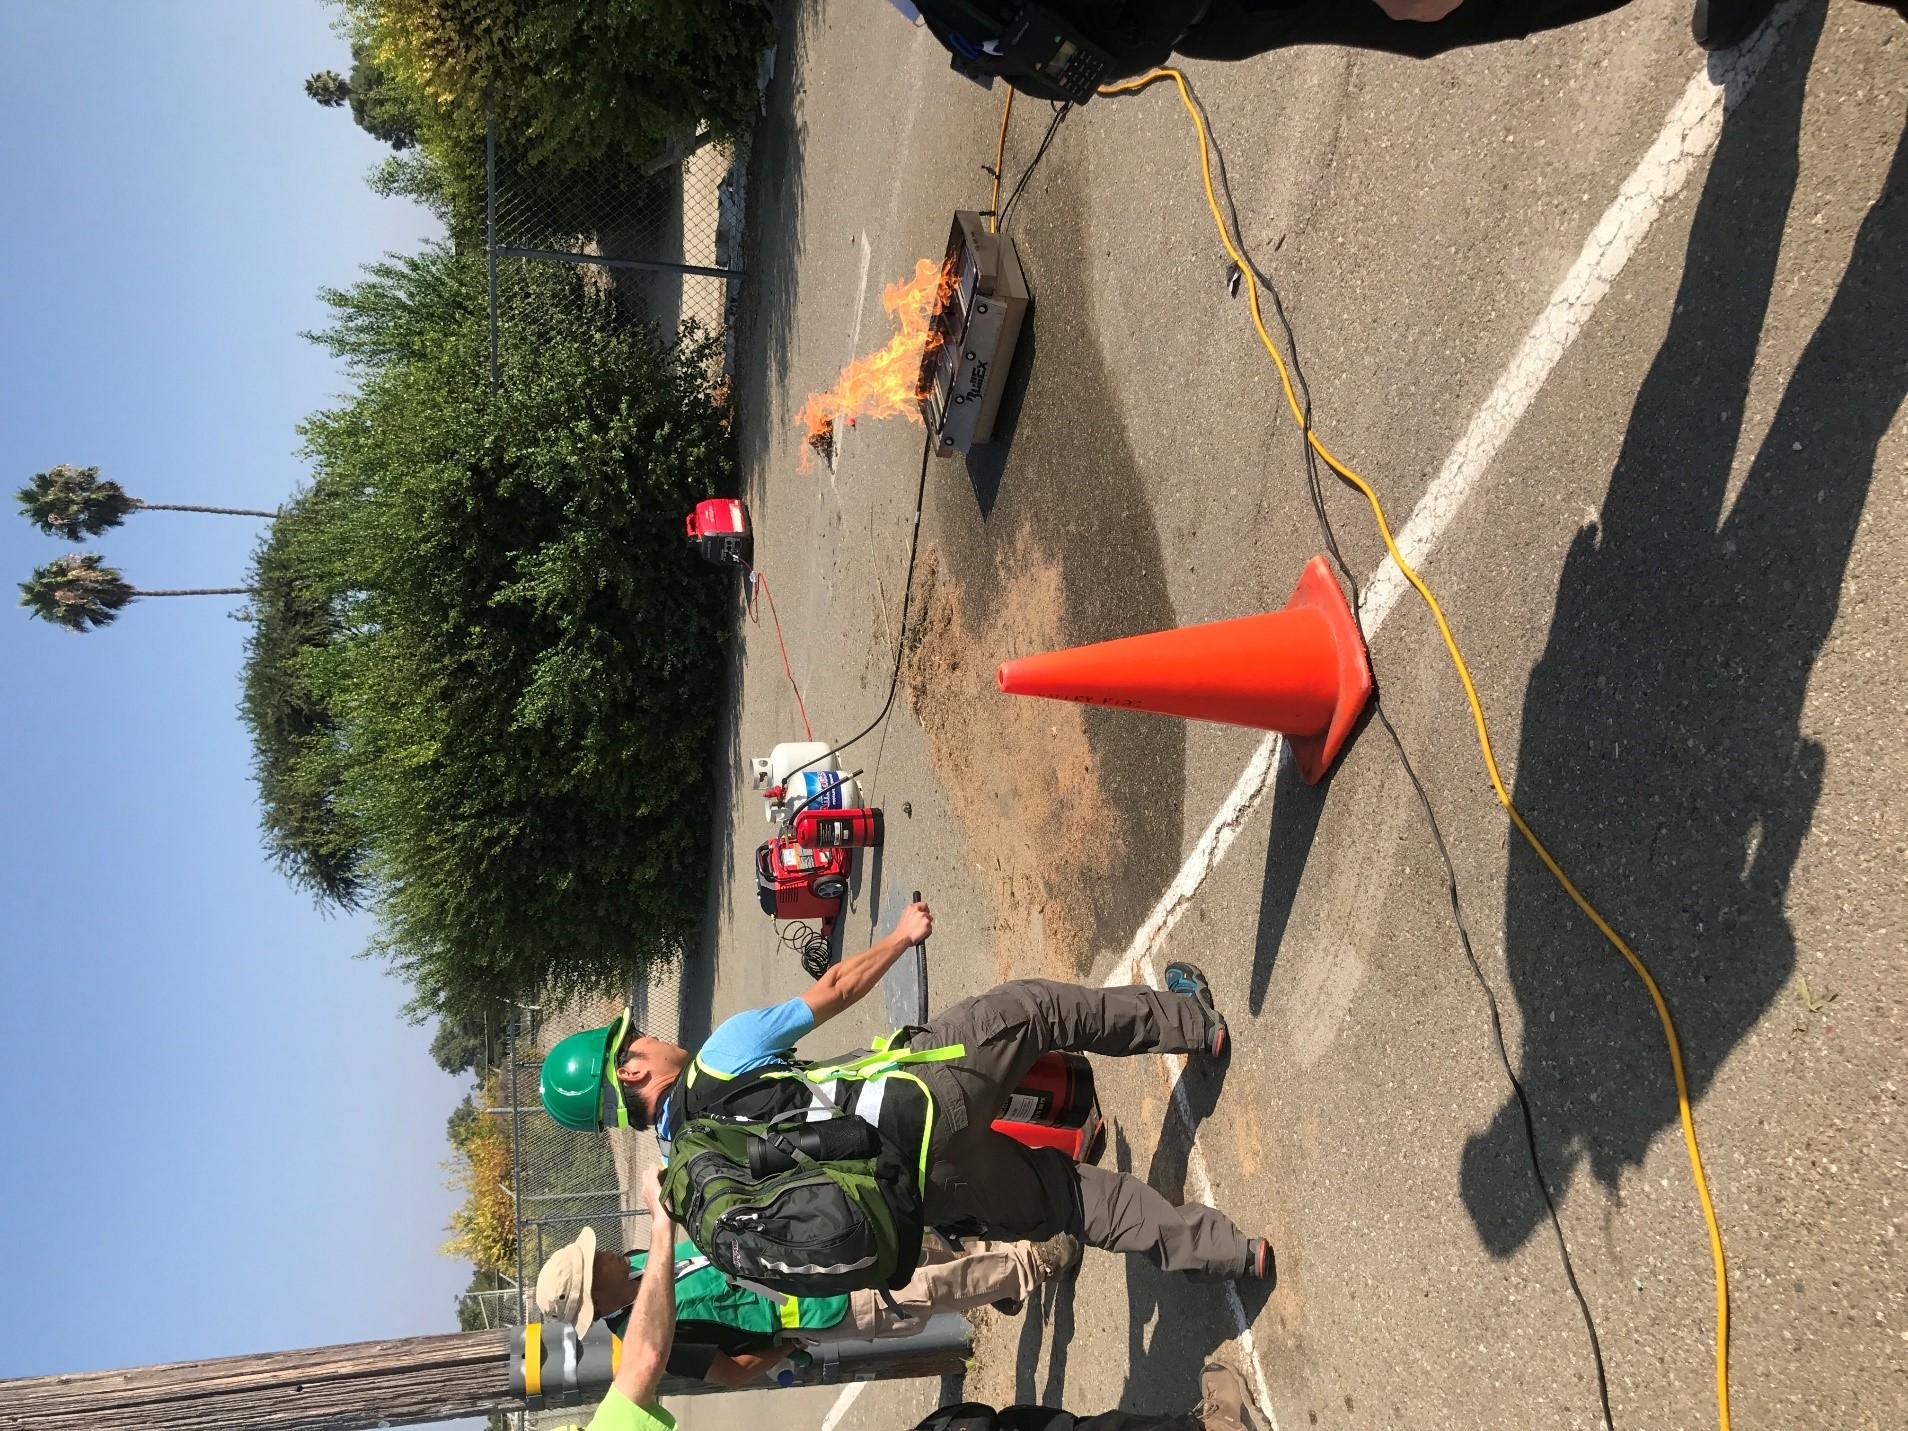 CERT student using fire extinguisher